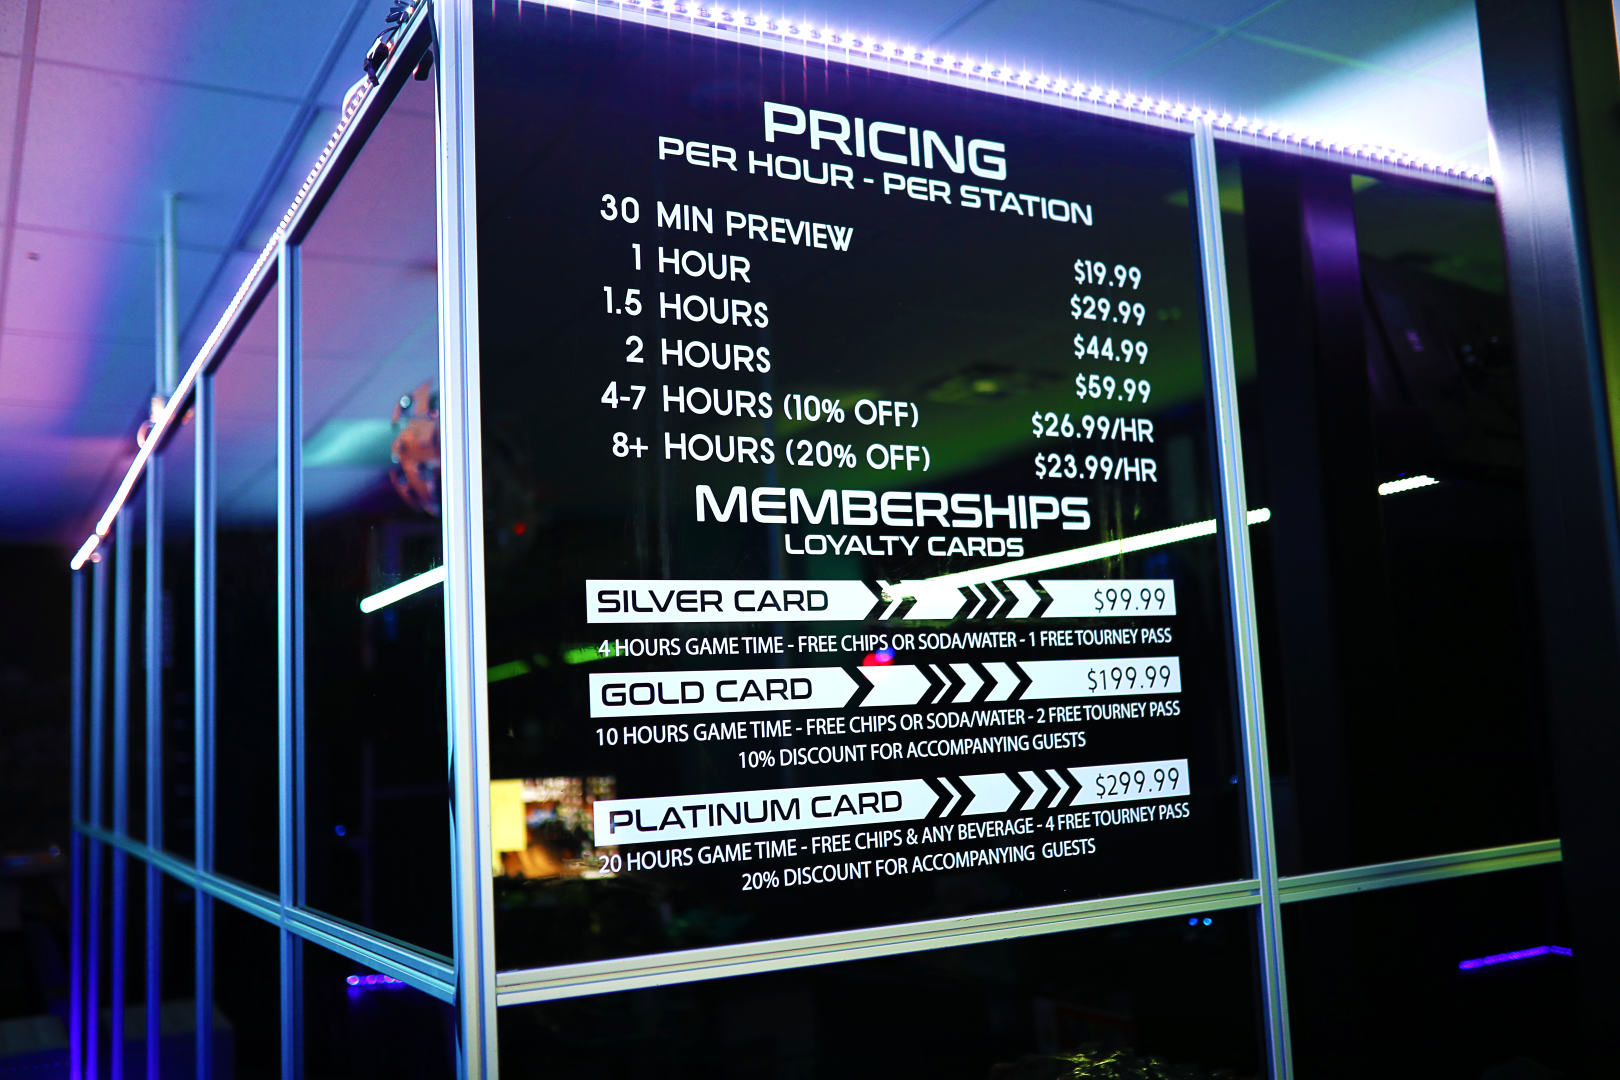 Old iSimu VR Pricing